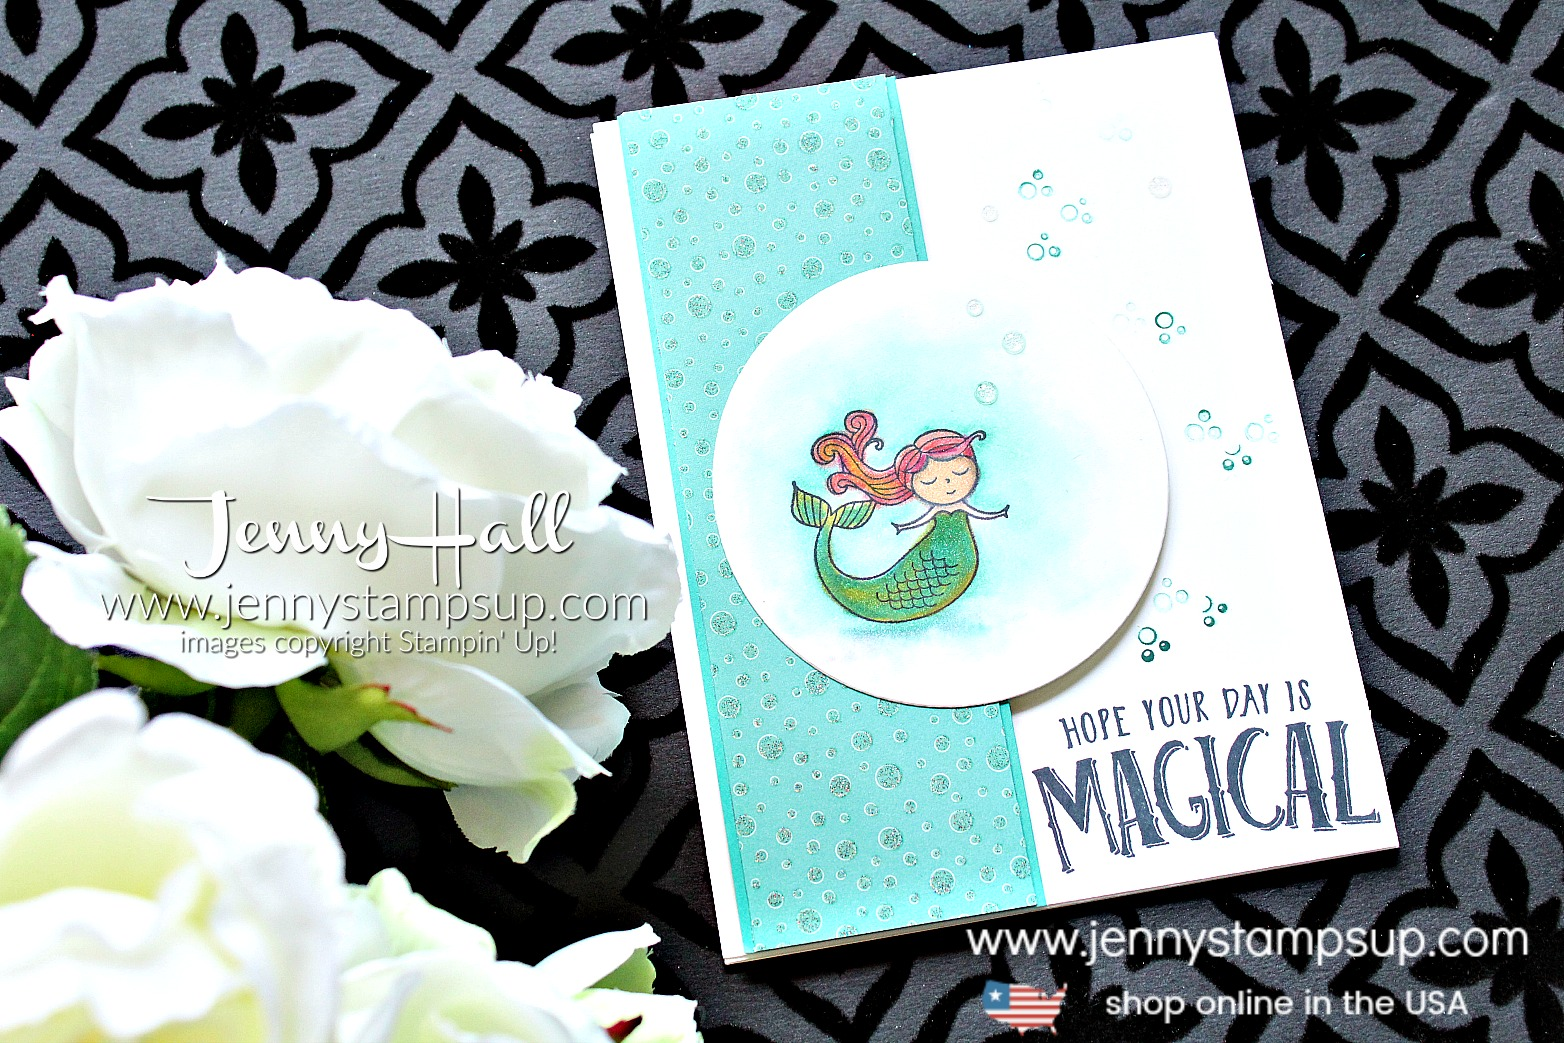 Magical Day mermaid card created by Jenny Hall at www.jennystampsup.com for #mermaid #mermaidhair #mermaidstamp #osatbh #osatbloghop #marchosatbloghop #magicalday #stampinup #stamping #cardmaking #cardmaker #stampinblends #videotutorial #youtuber #processvideo #magical #jennyhall #jennyhalldesign #jennyhallstampinup #jennystampsup #watercolor #crafts #lifestyle #creativelife #diy